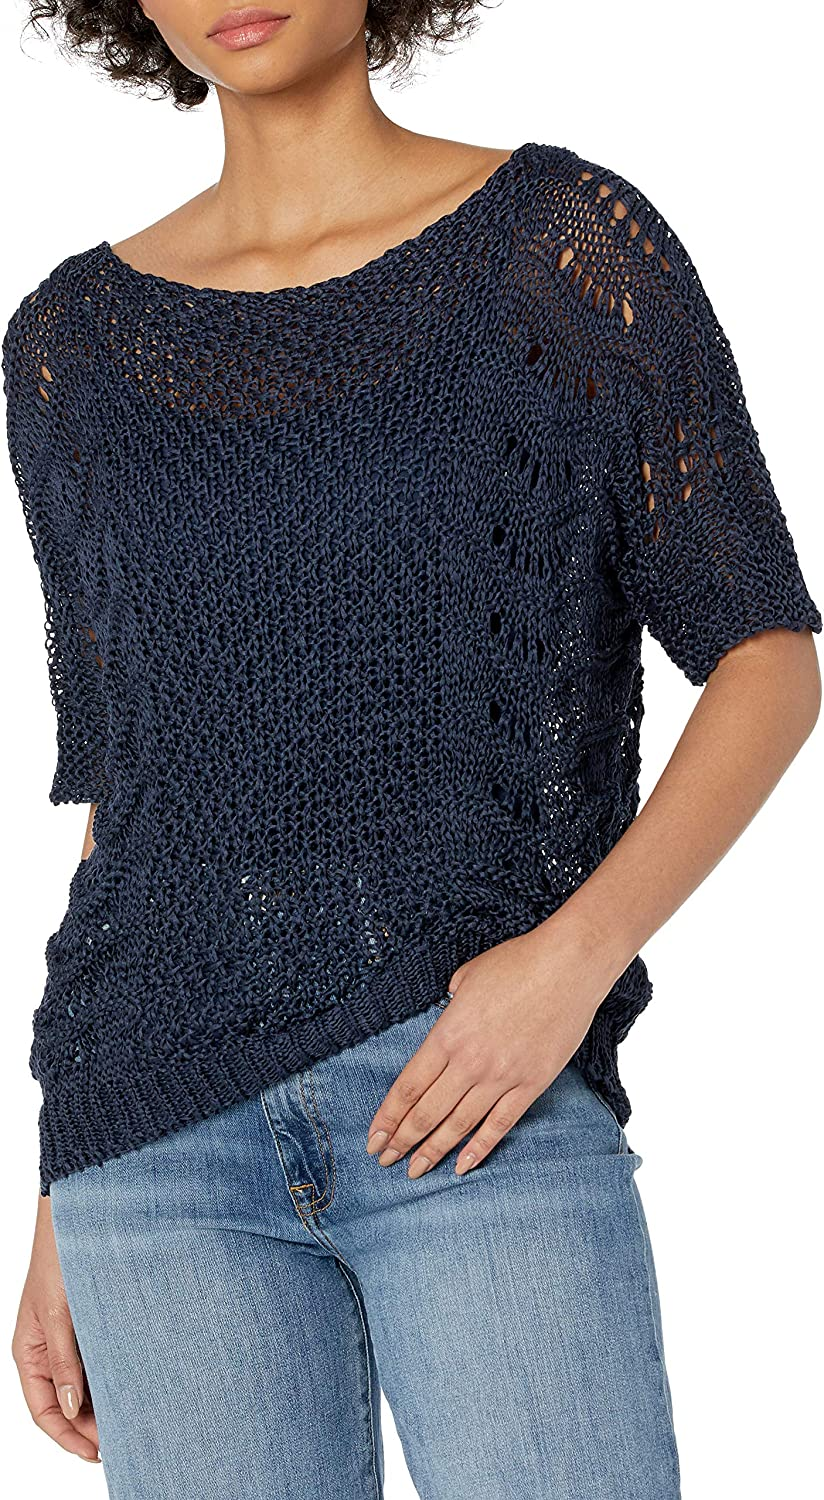 M Made in Italy 正規品送料無料 Women's Knit 春の新作続々 Sleeve Short Sweater